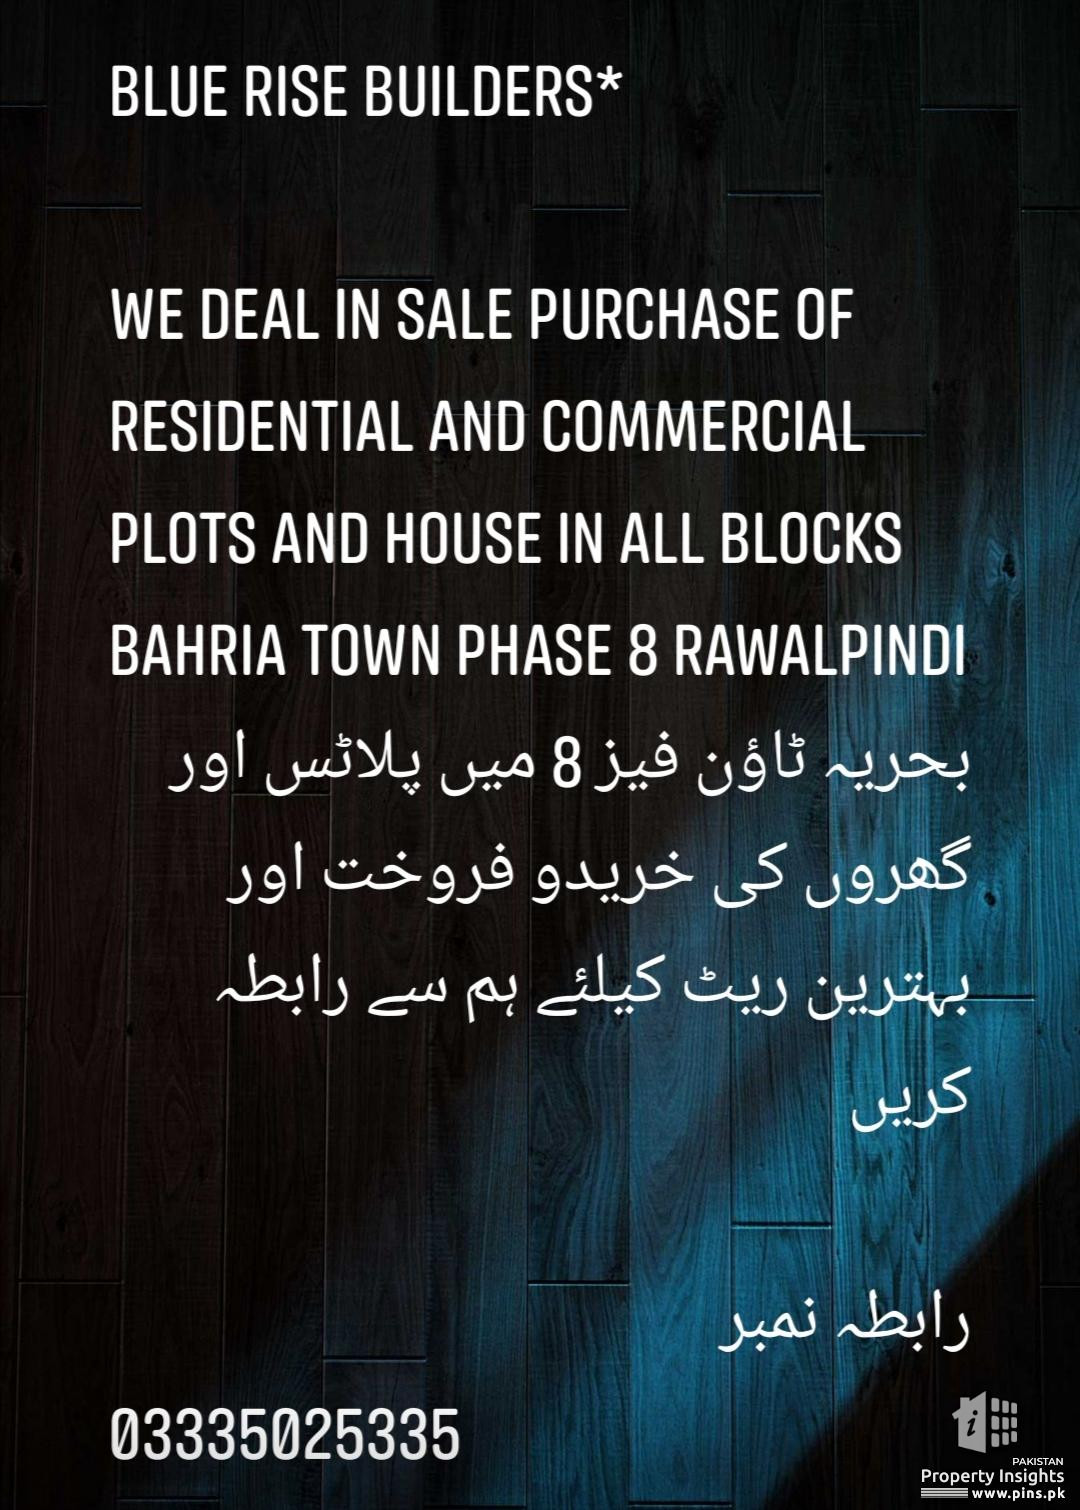 We deal in Sale Purchase of Bahria Town Rawalpindi Phase 8